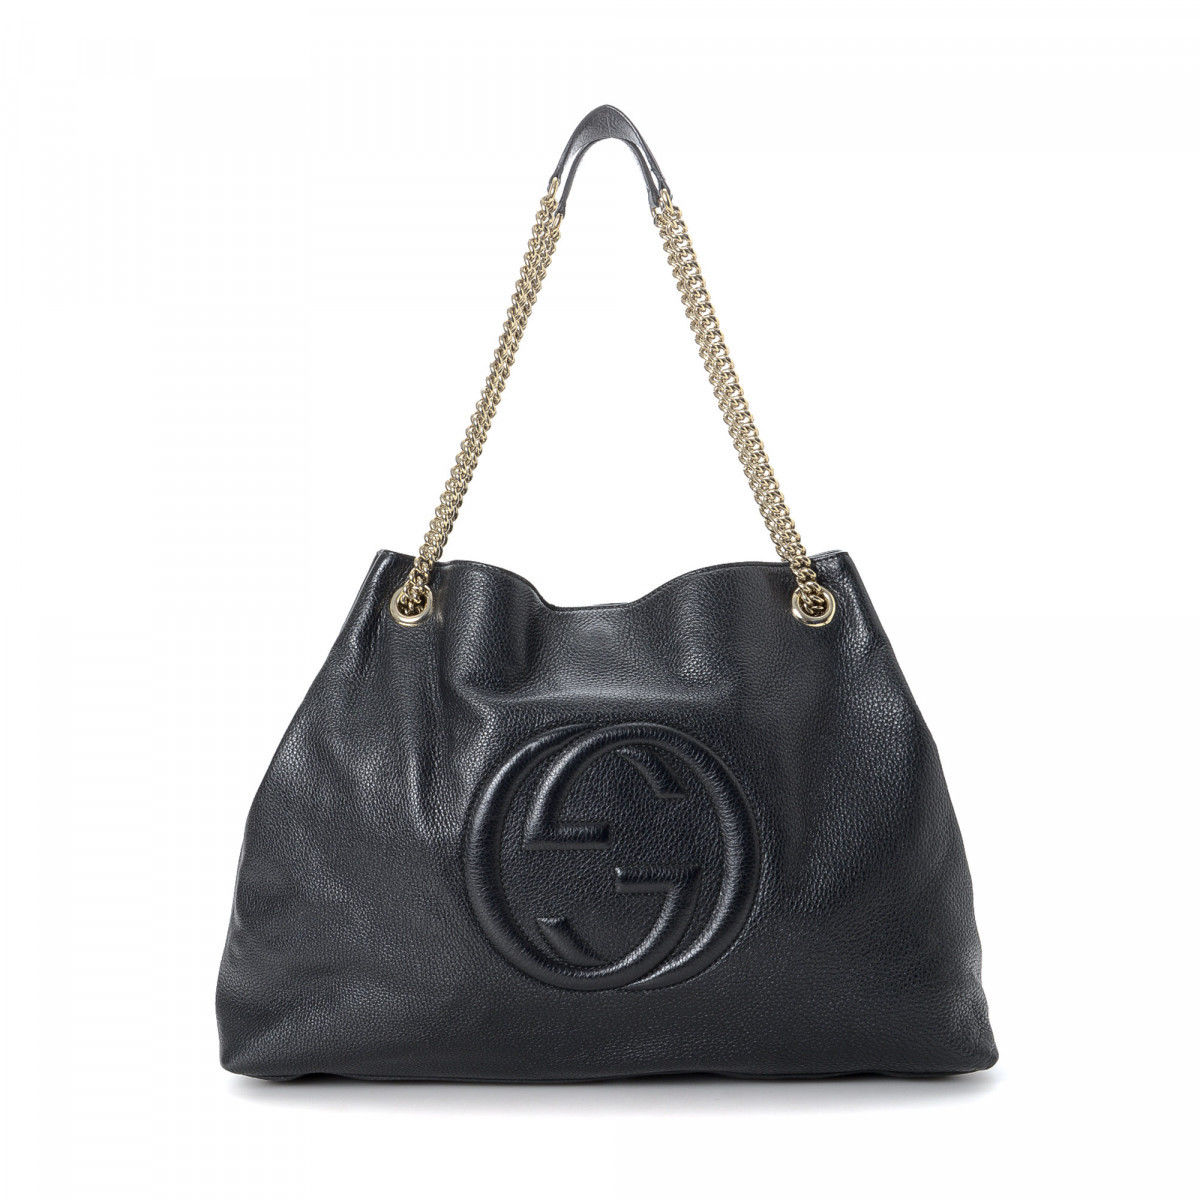 91523aad1a0566 Gucci Soho Chain Shoulder Bag Leather - LXRandCo - Pre-Owned Luxury ...